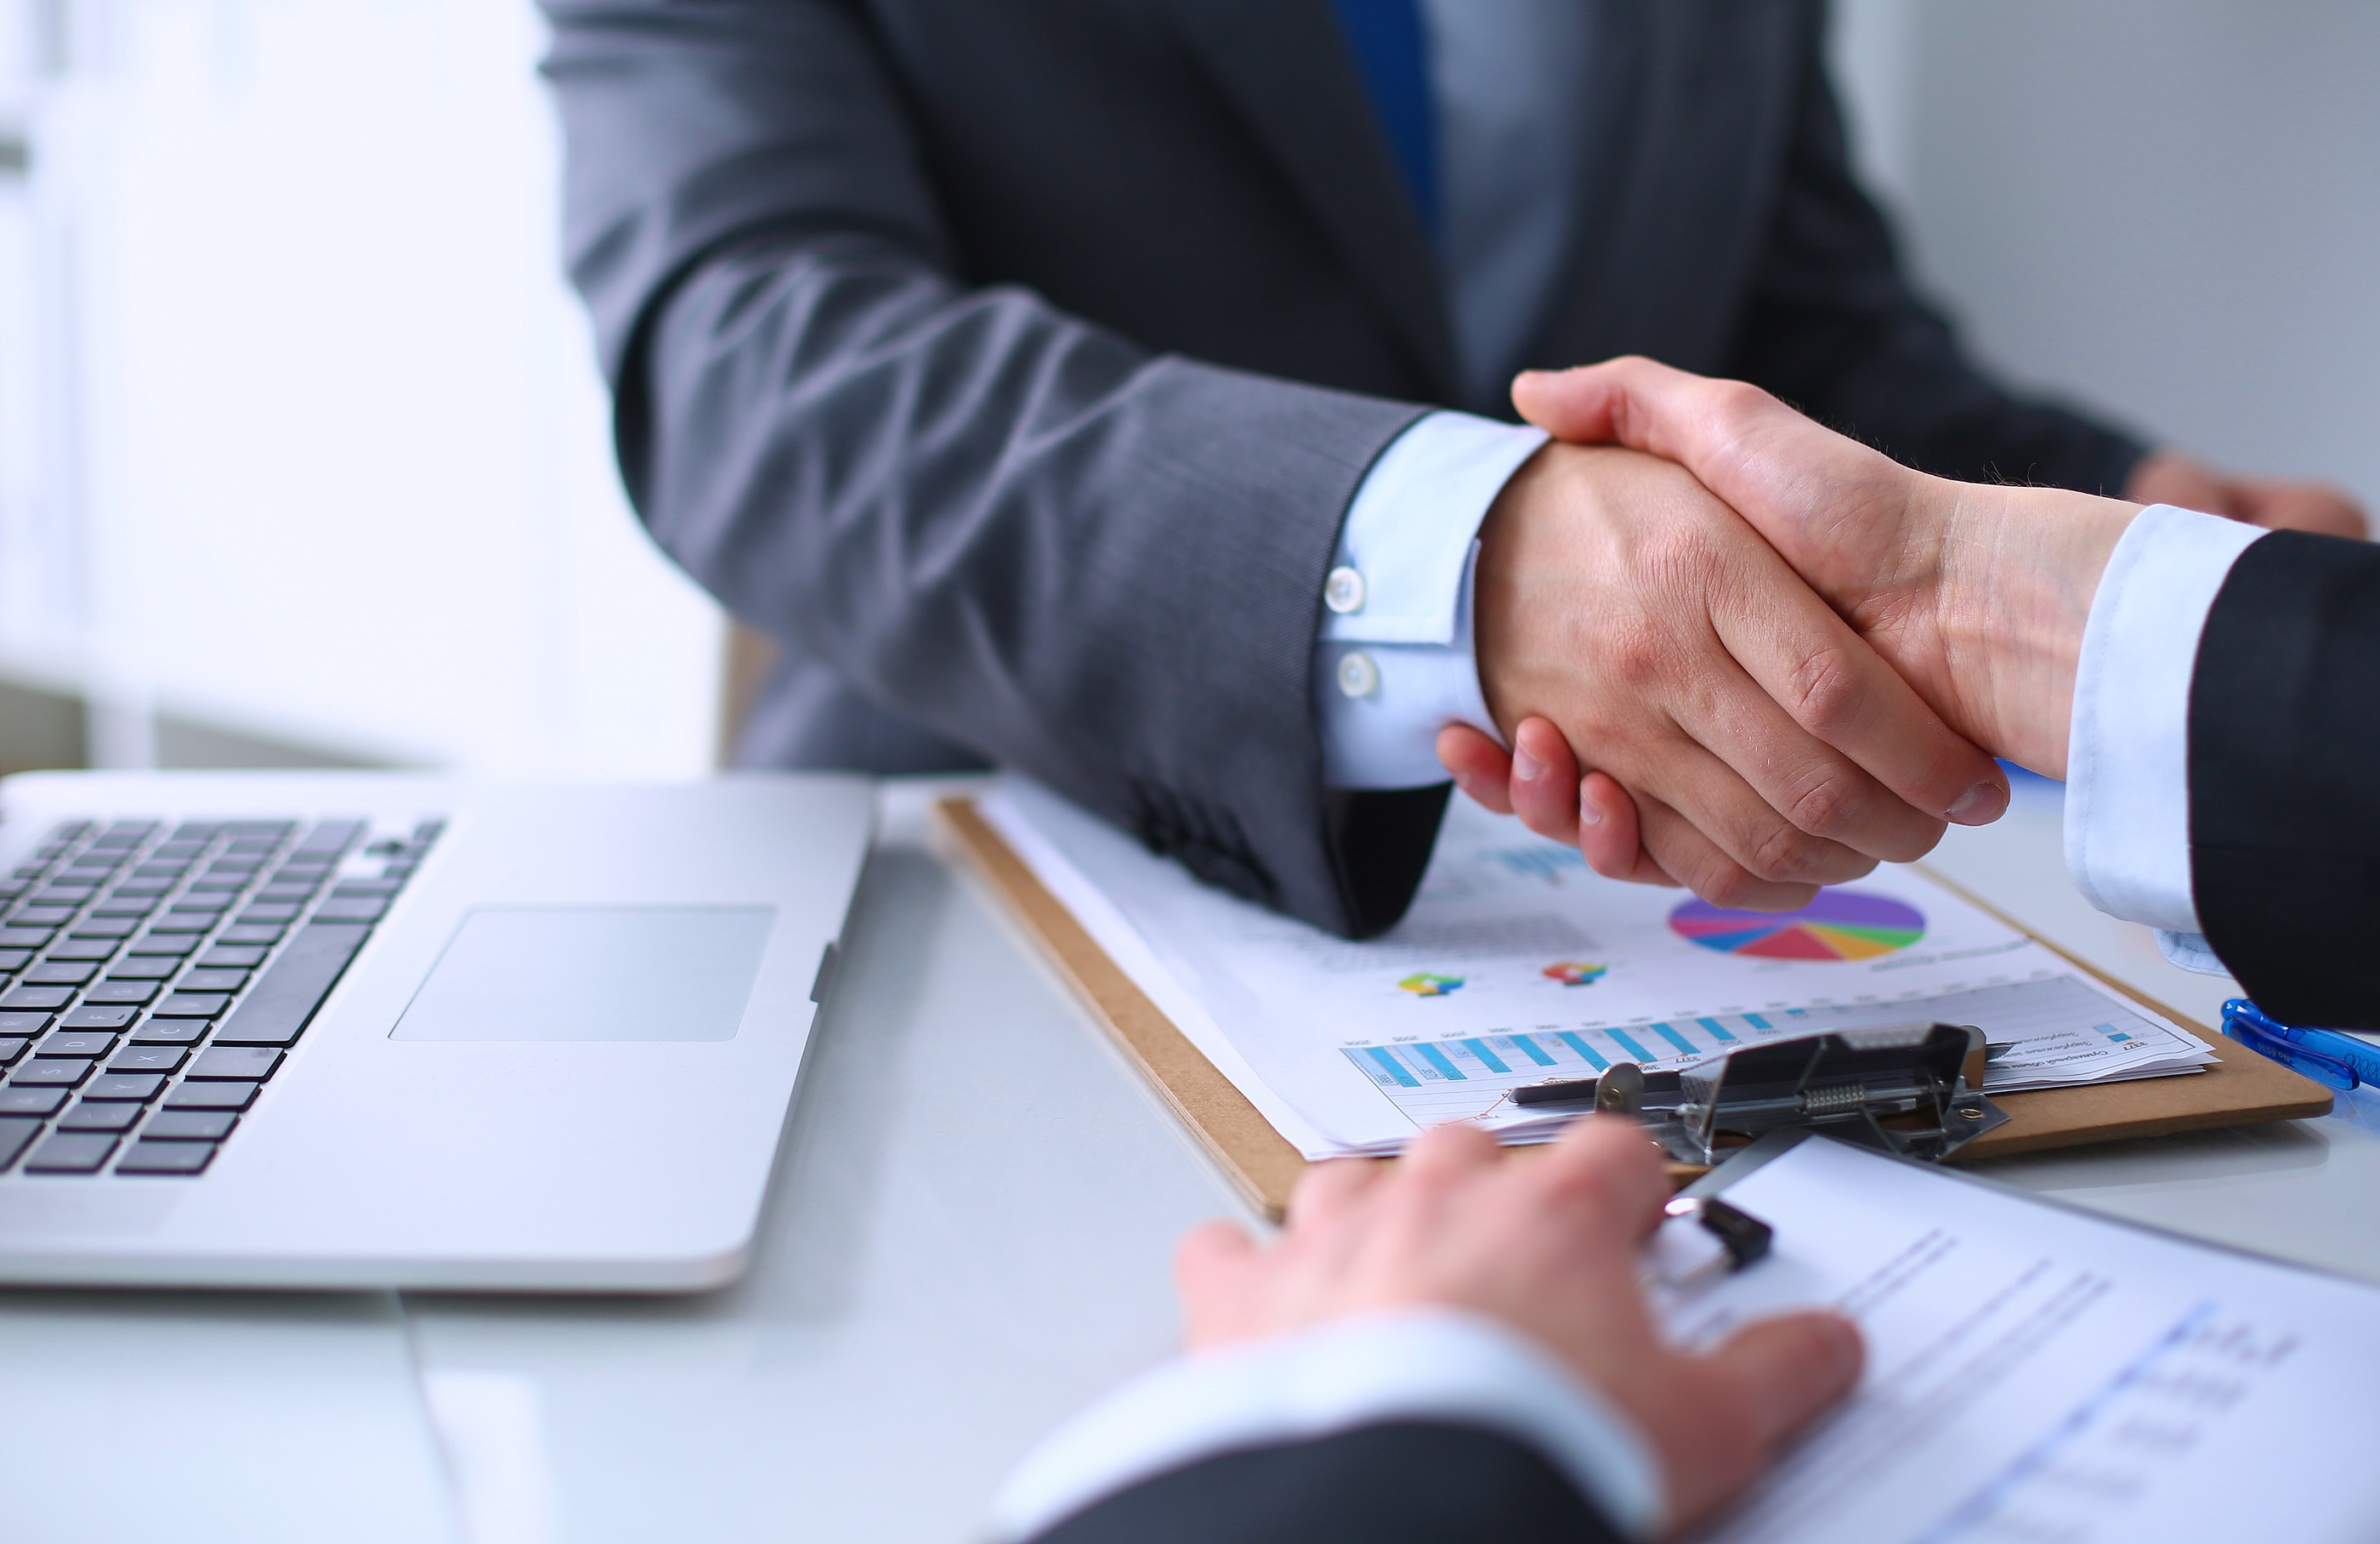 two people shaking hands over a desk with a laptop and printed financial reports representing successful purchasing of bonds from an underwriter